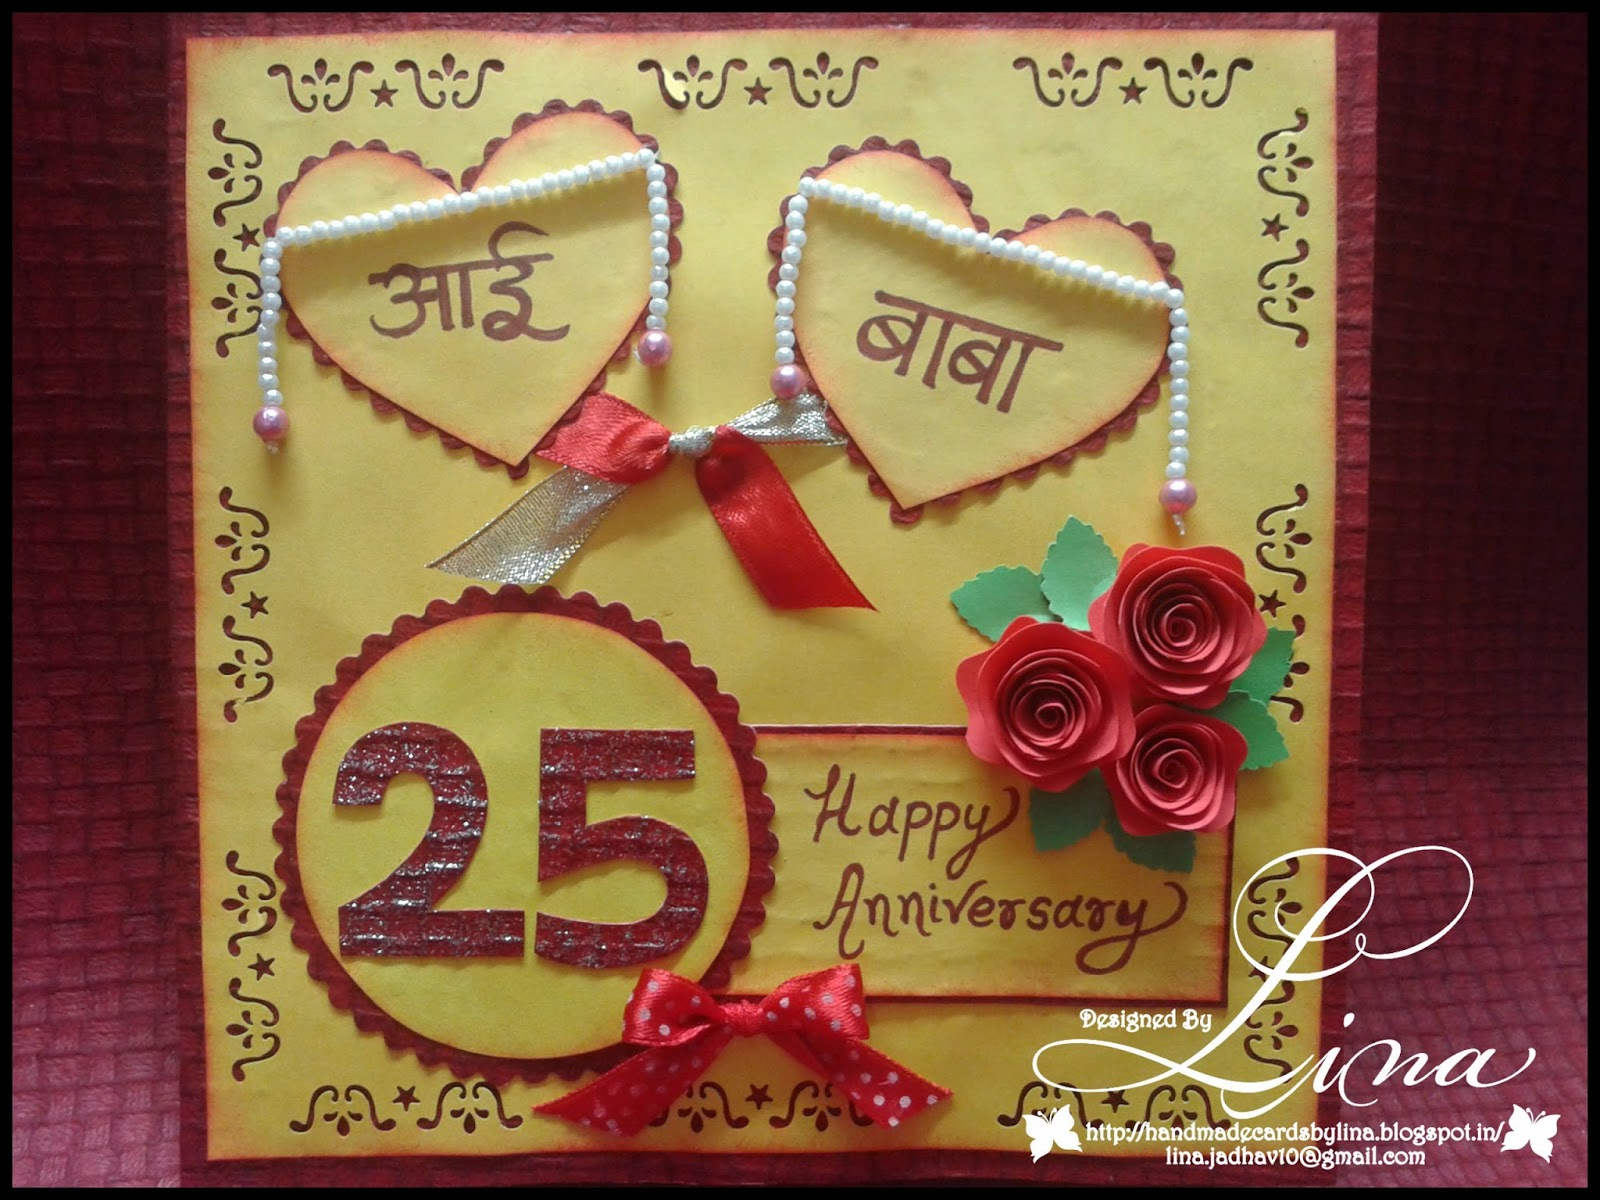 Best Happy Anniversary Mom And Dad Status In Marathi Image Collection